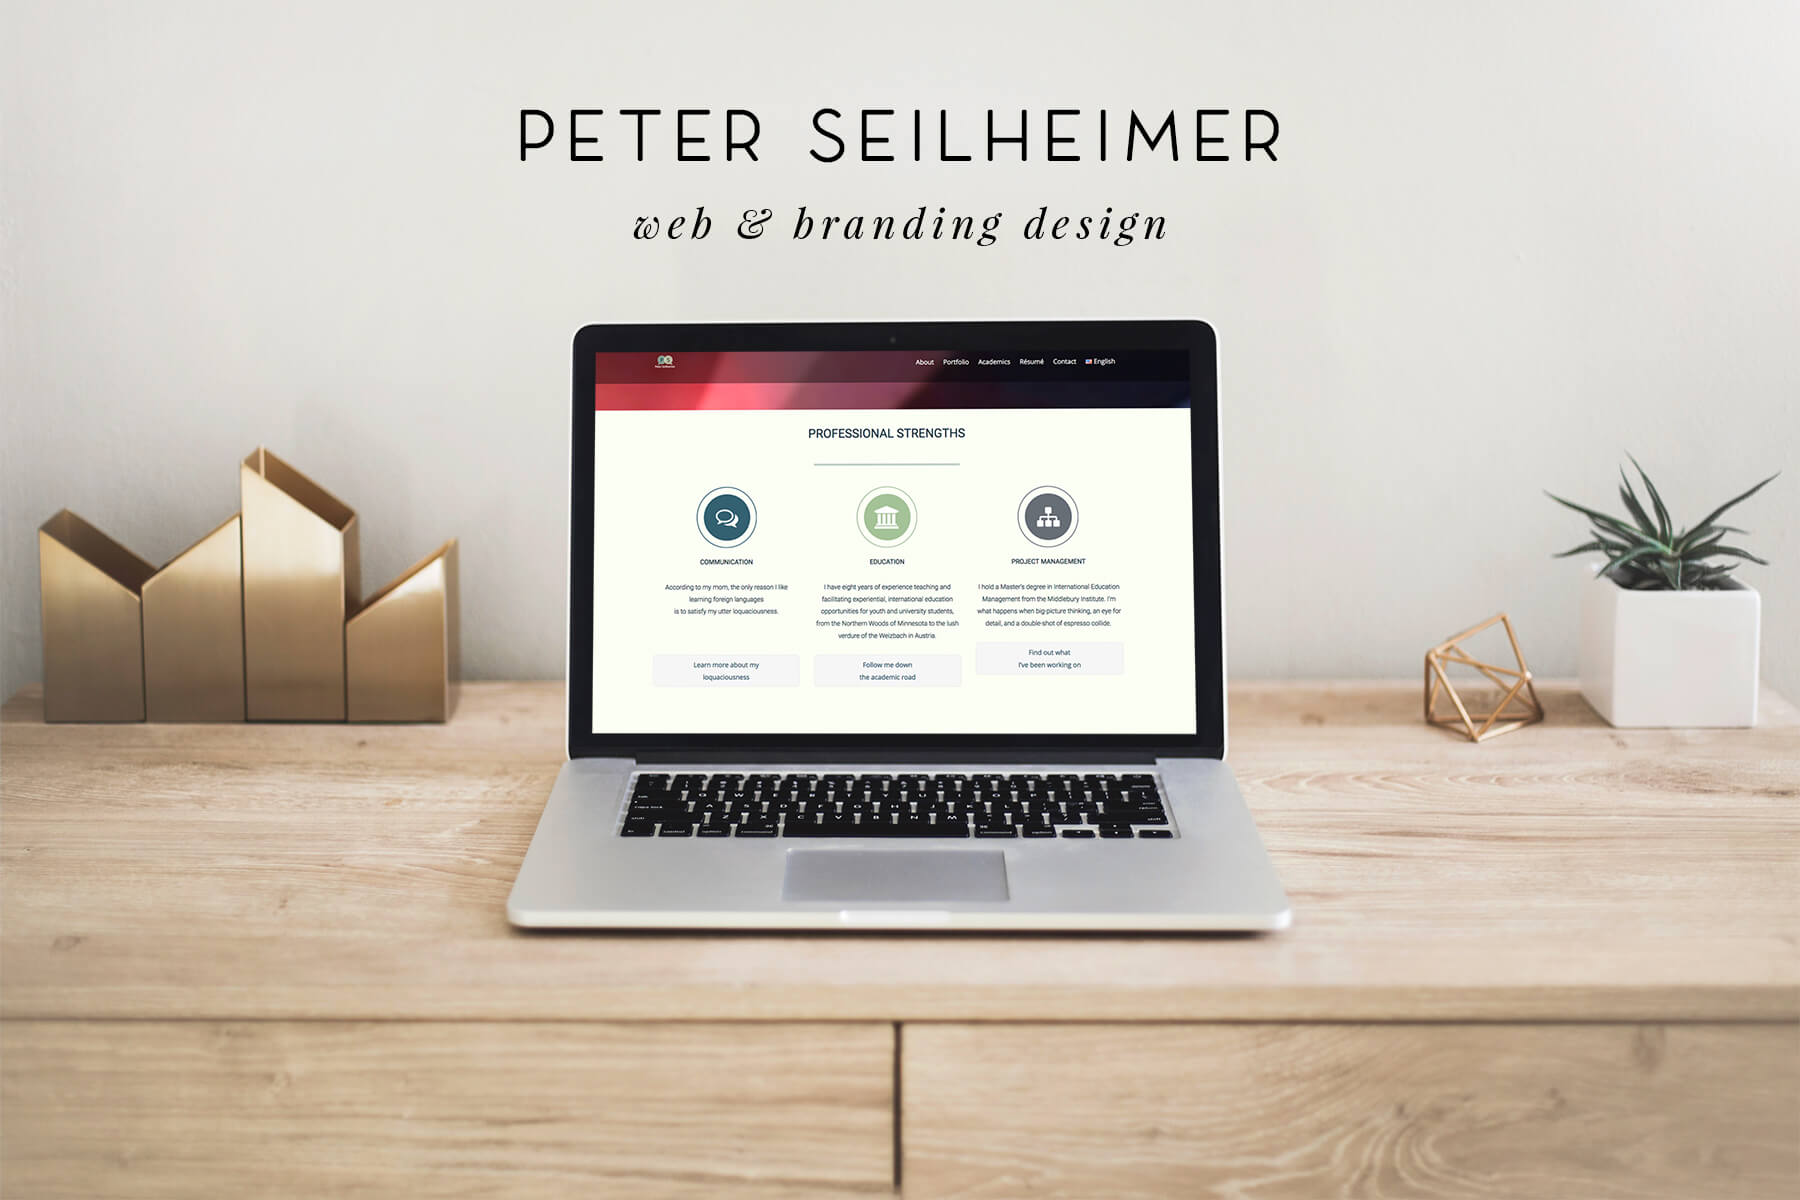 ns-design-peter-seilheimer-web-and-branding-design